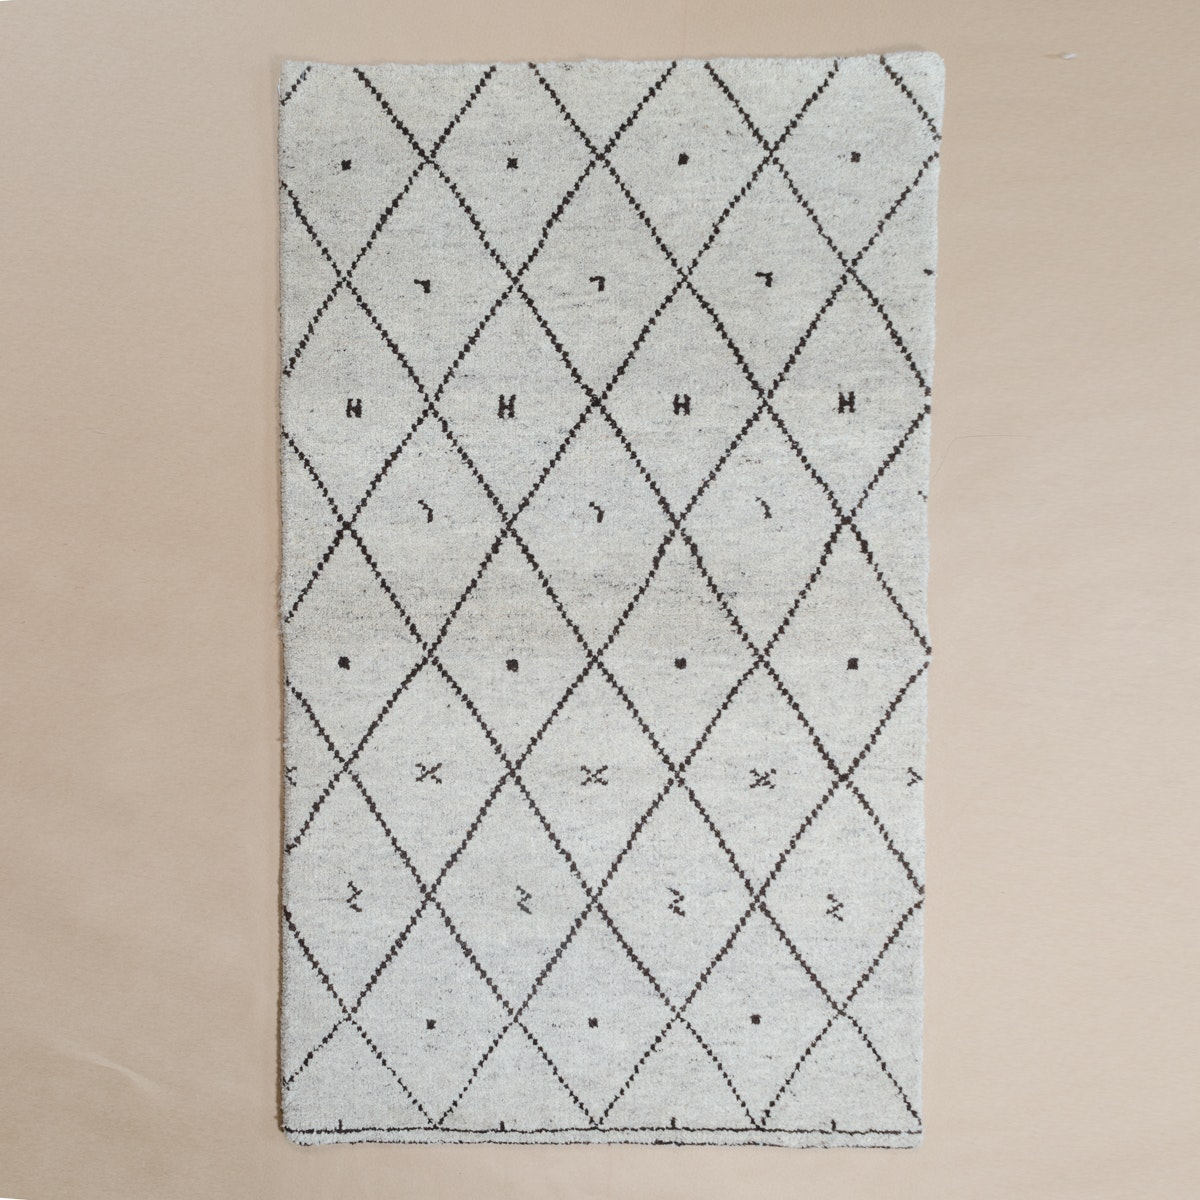 Hand-Knotted Moroccan-Style Area Rug